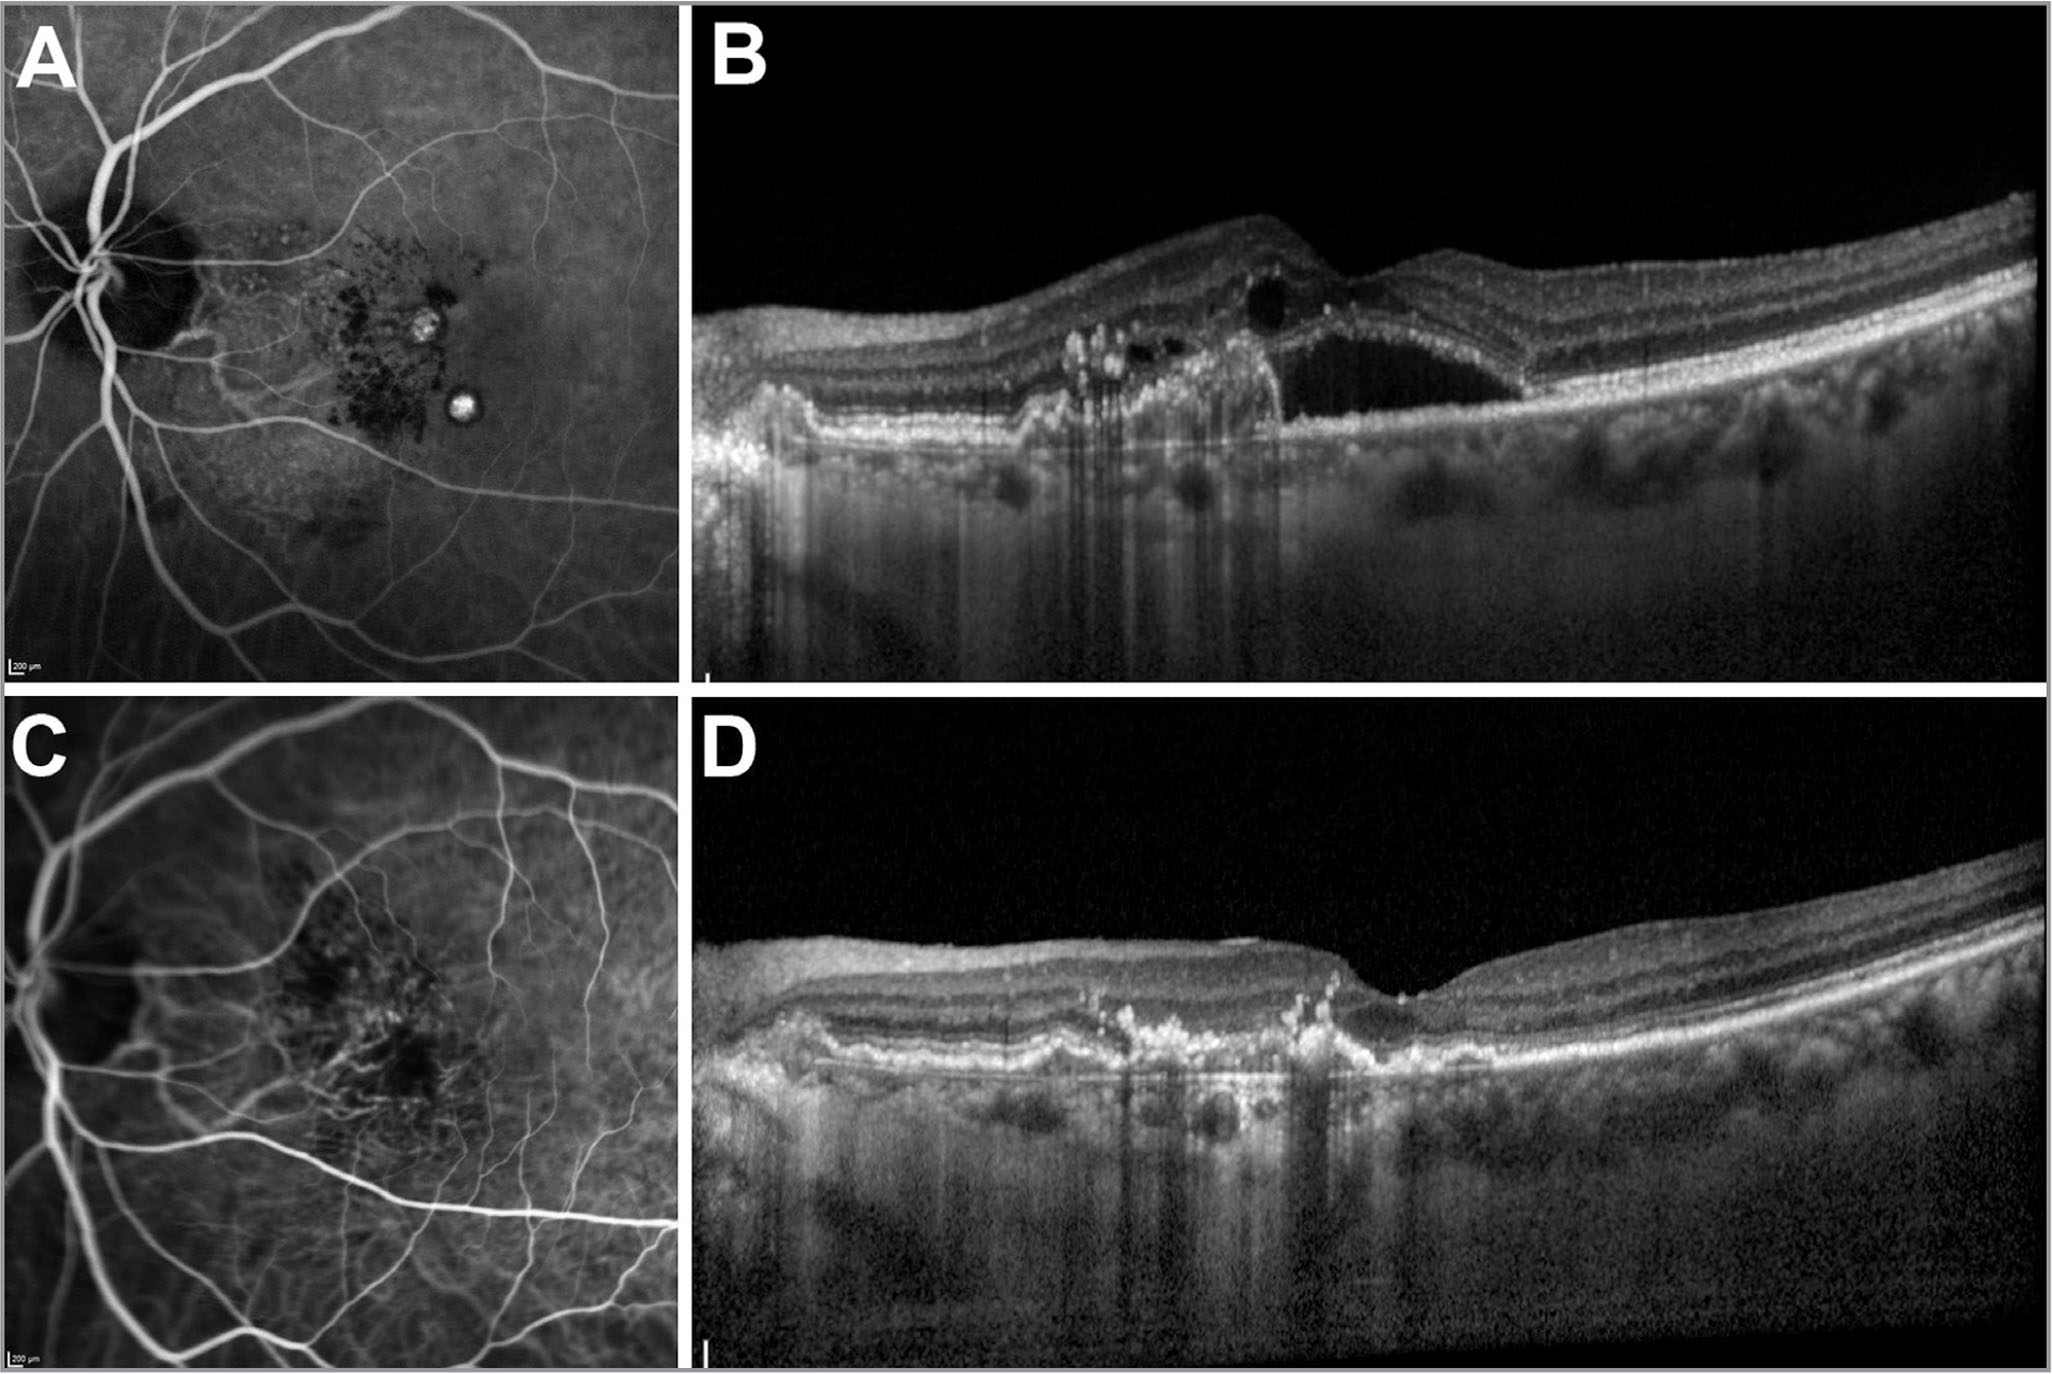 Treatment of polypoidal choroidal vasculopathy (PCV). (A) Indocyanine green angiography (ICGA) on presentation, illustrating characteristic polypoidal lesions and a branching vascular network (BVN). (B) Optical coherence tomography (OCT) on presentation, showing subretinal fluid, intraretinal cysts, and elevation of the retinal pigment epithelium (RPE) caused by the PCV lesion. The sharp elevation of RPE near the fovea corresponds to a polypoidal lesion. (C) ICGA following treatment with photodynamic therapy and a course of anti-vascular endothelial growth factor agents. The polypoidal lesions have resolved, although the BVN is still present. (D) OCT scan taken after treatment, showing resolution of the subretinal and intraretinal fluid. The RPE elevation has also reduced in height.